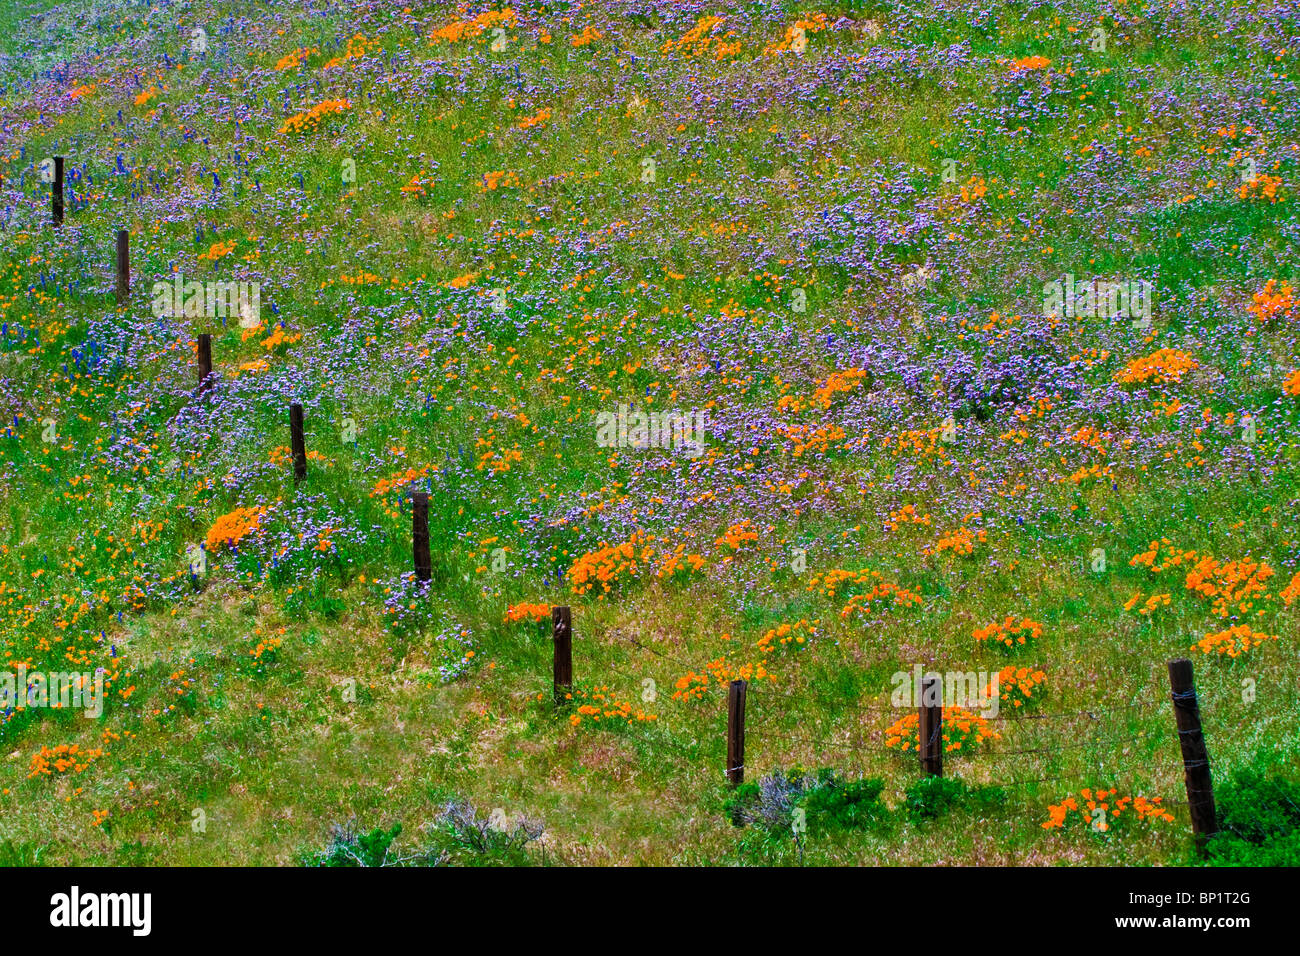 Wildflowers in the Tehachapi Mountains, Angeles National Forest, California - Stock Image